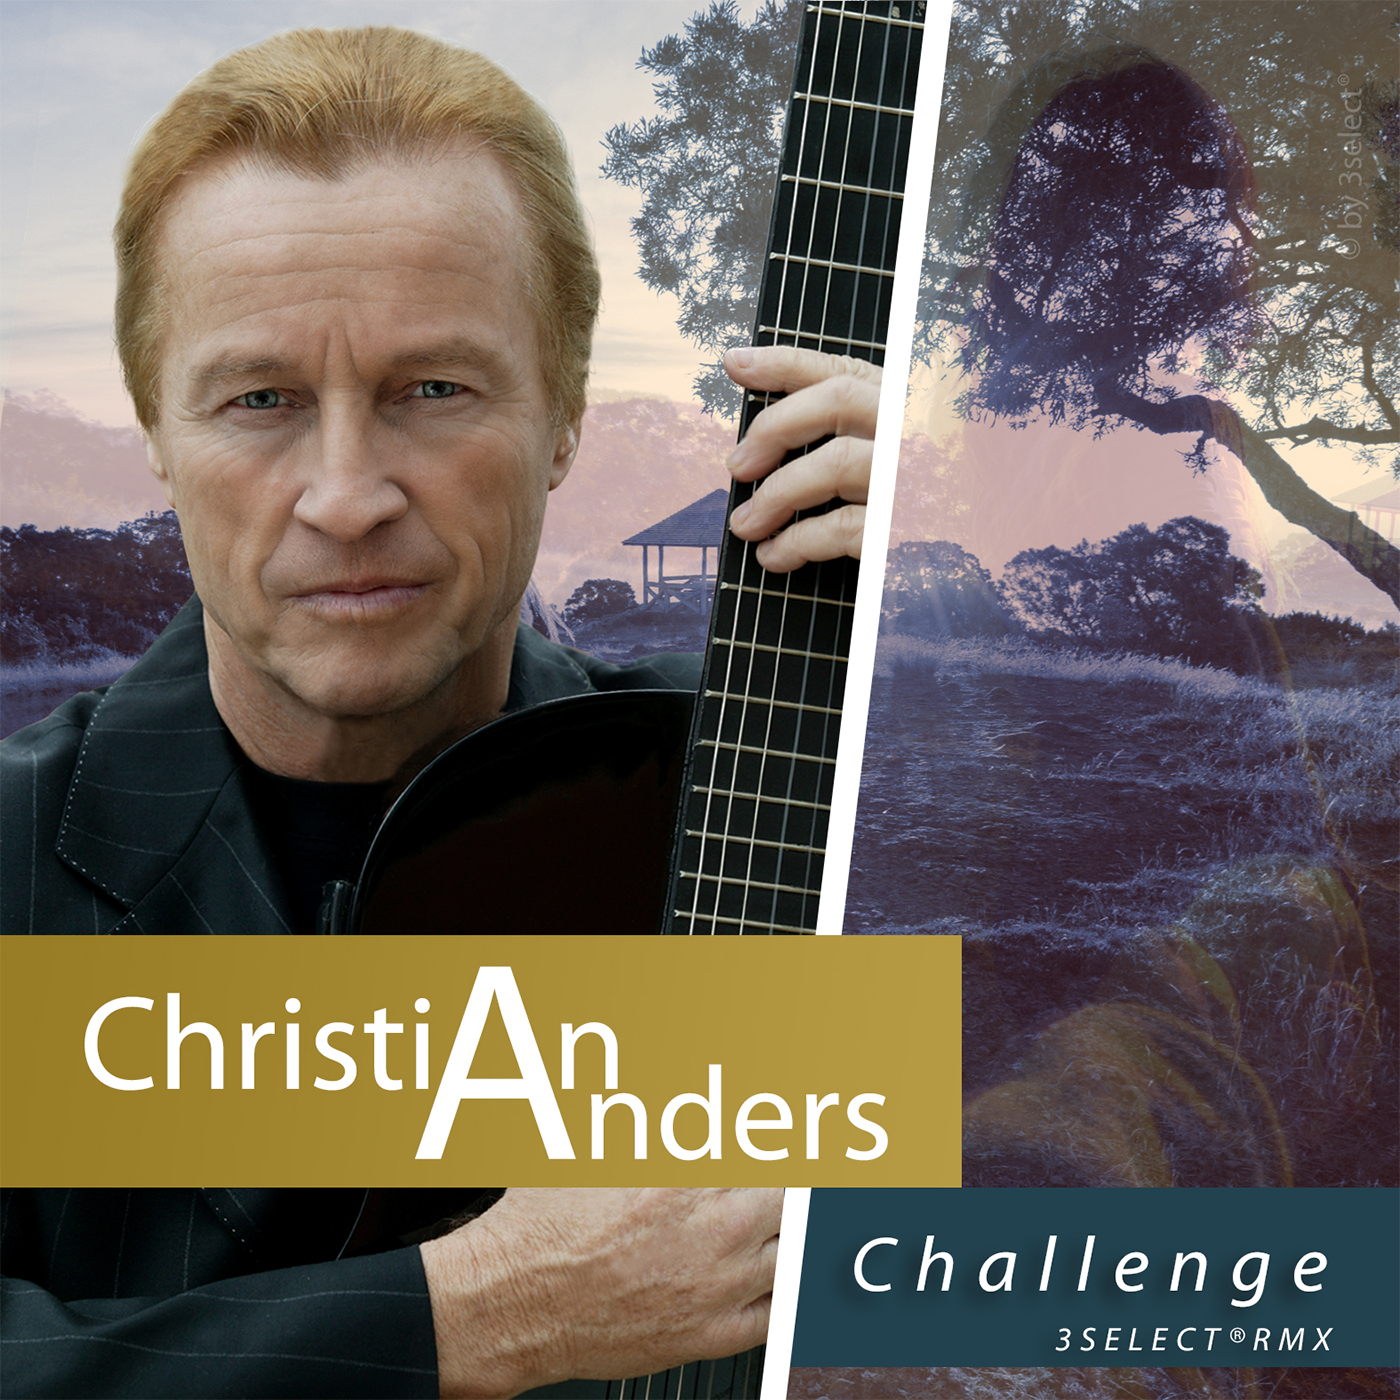 CHRISTIAN ANDERS * Challenge (Download-Maxi)